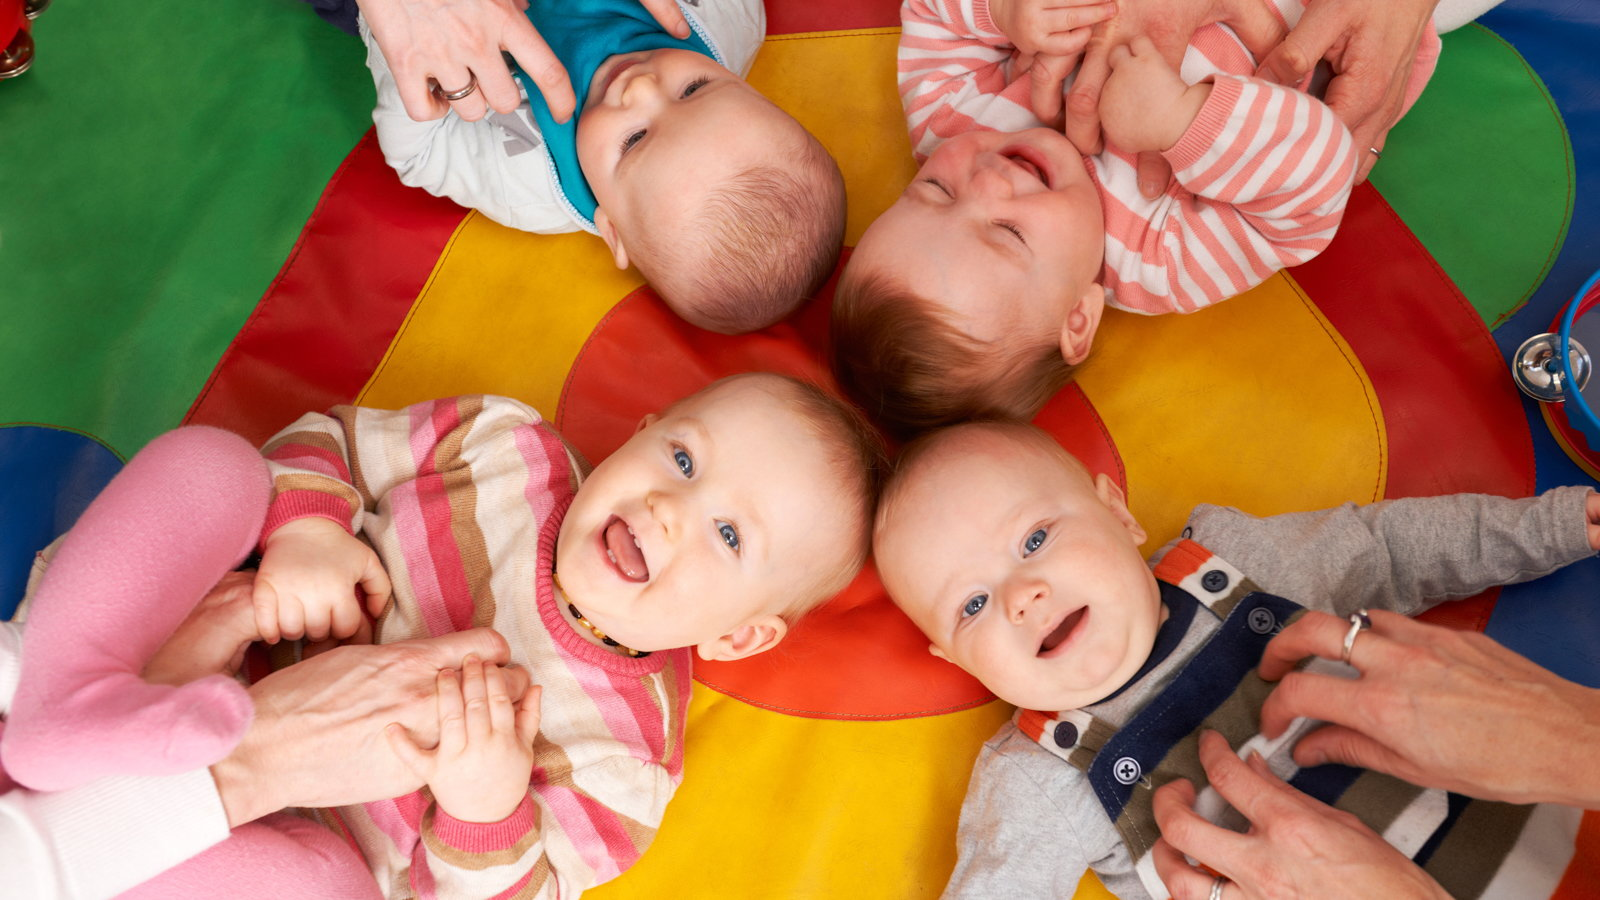 babies on a playmat at daycare